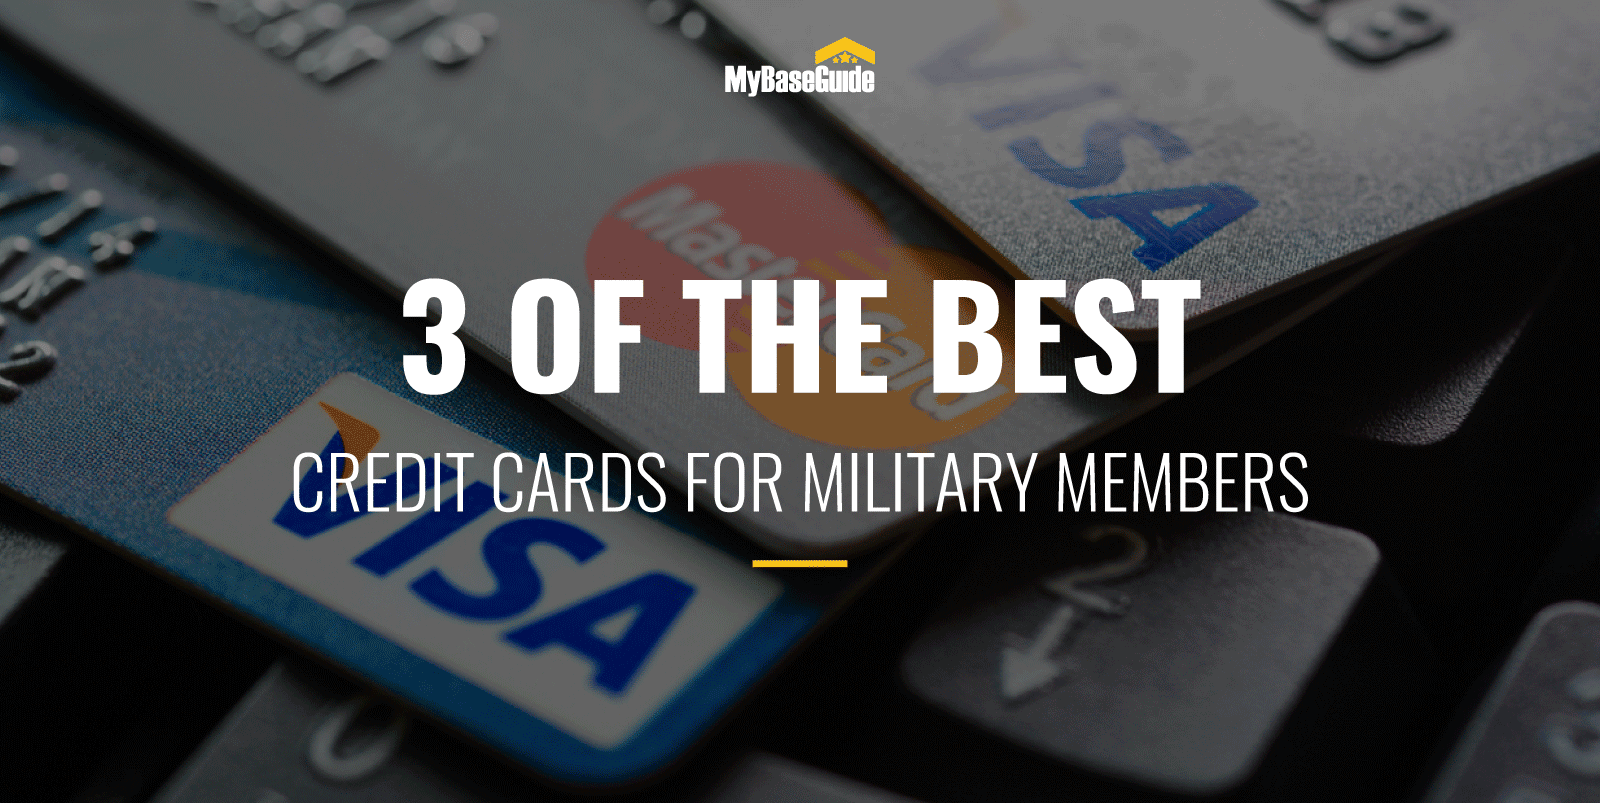 3 of the Best Credit Cards for Military Members